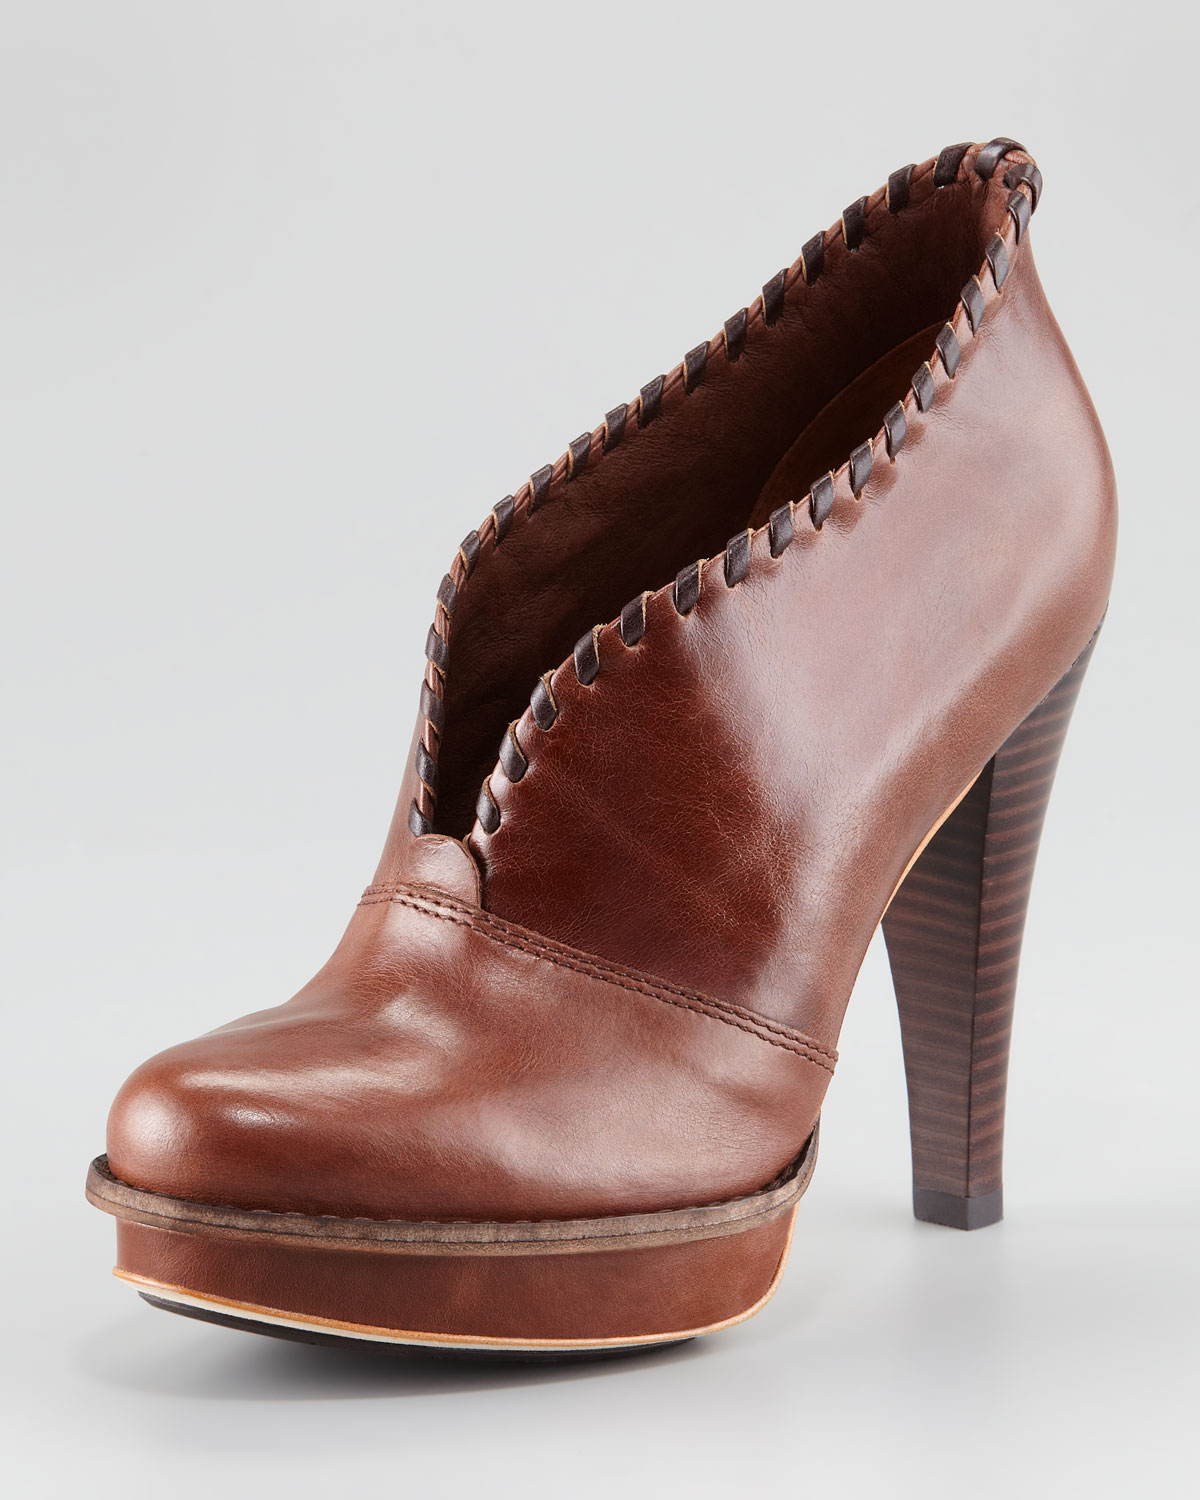 8c55c2e4d UGG Jamison Leather Ankle Boot in Brown - Lyst